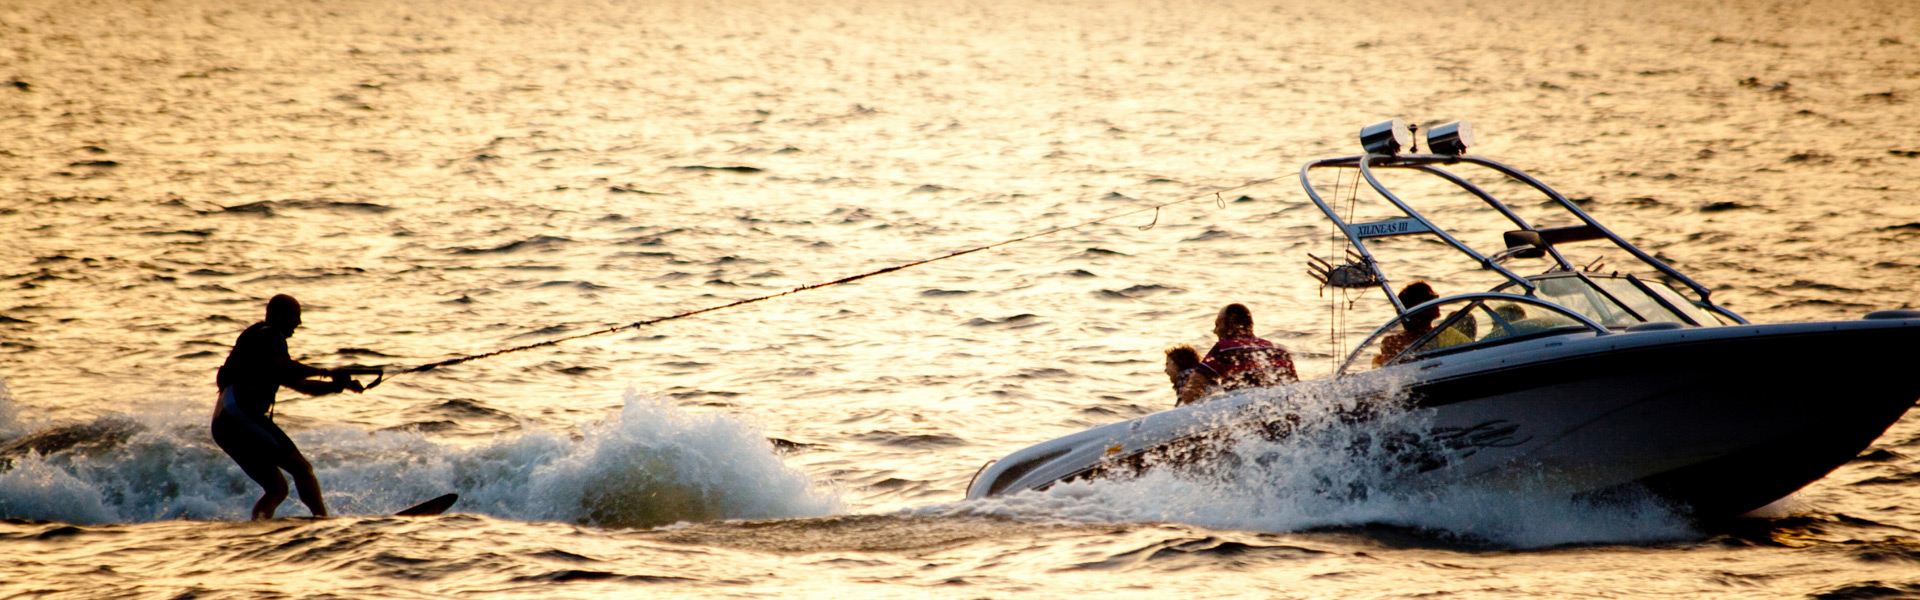 Water Sports Fun Relax Holiday Nature Sun